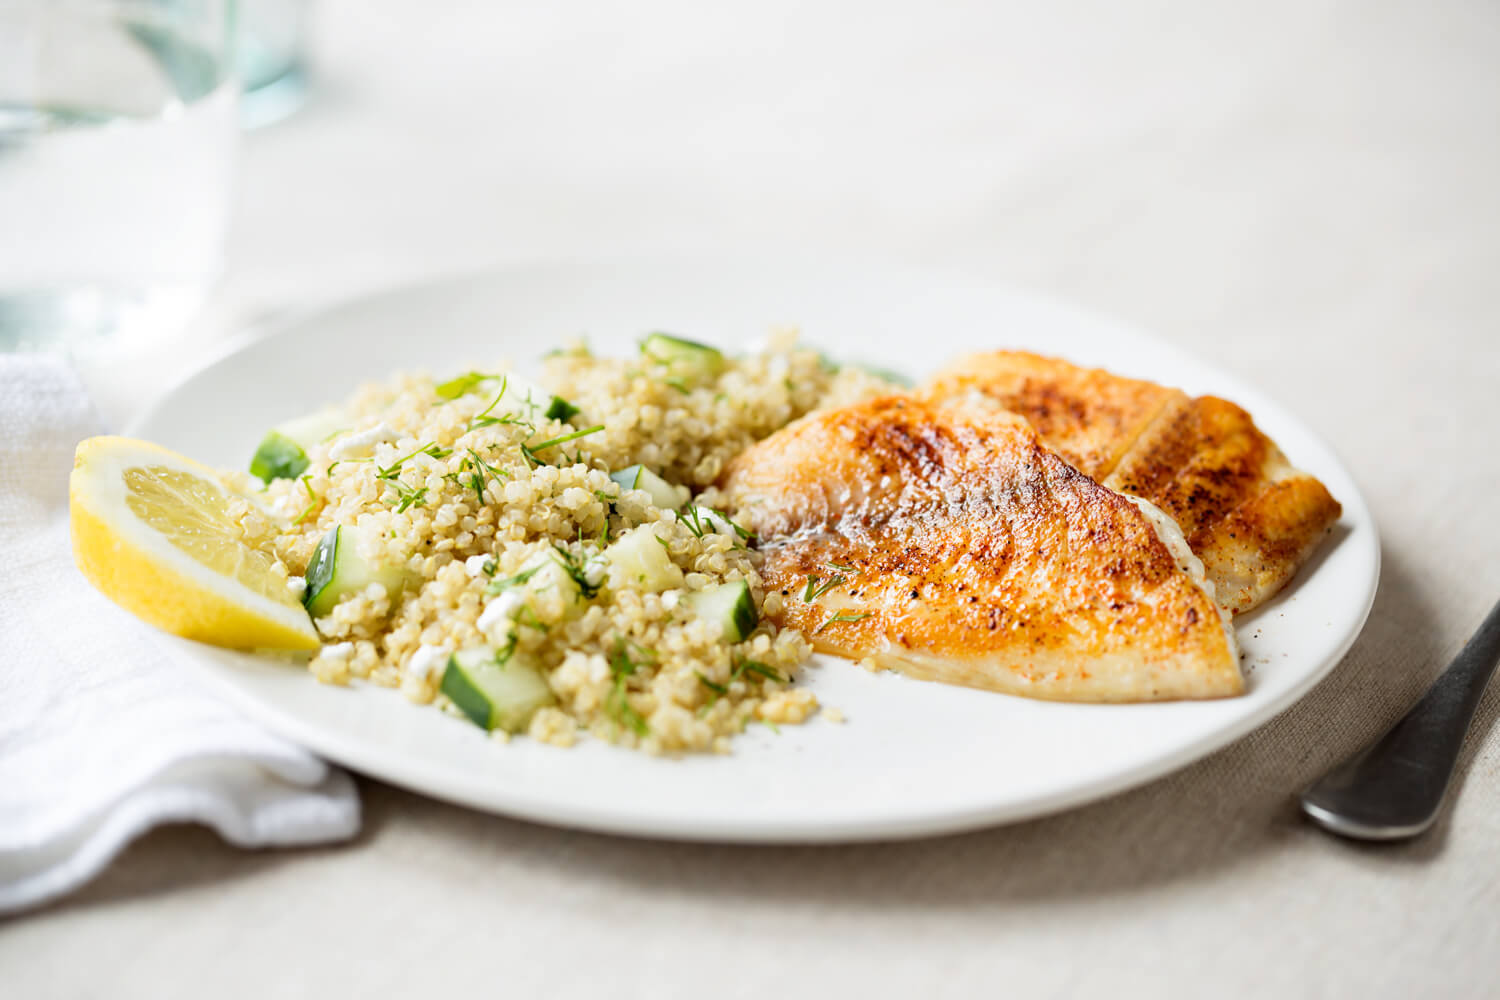 Tilapia and quinoa with feta and cucumber teig 130703 4131 (1)